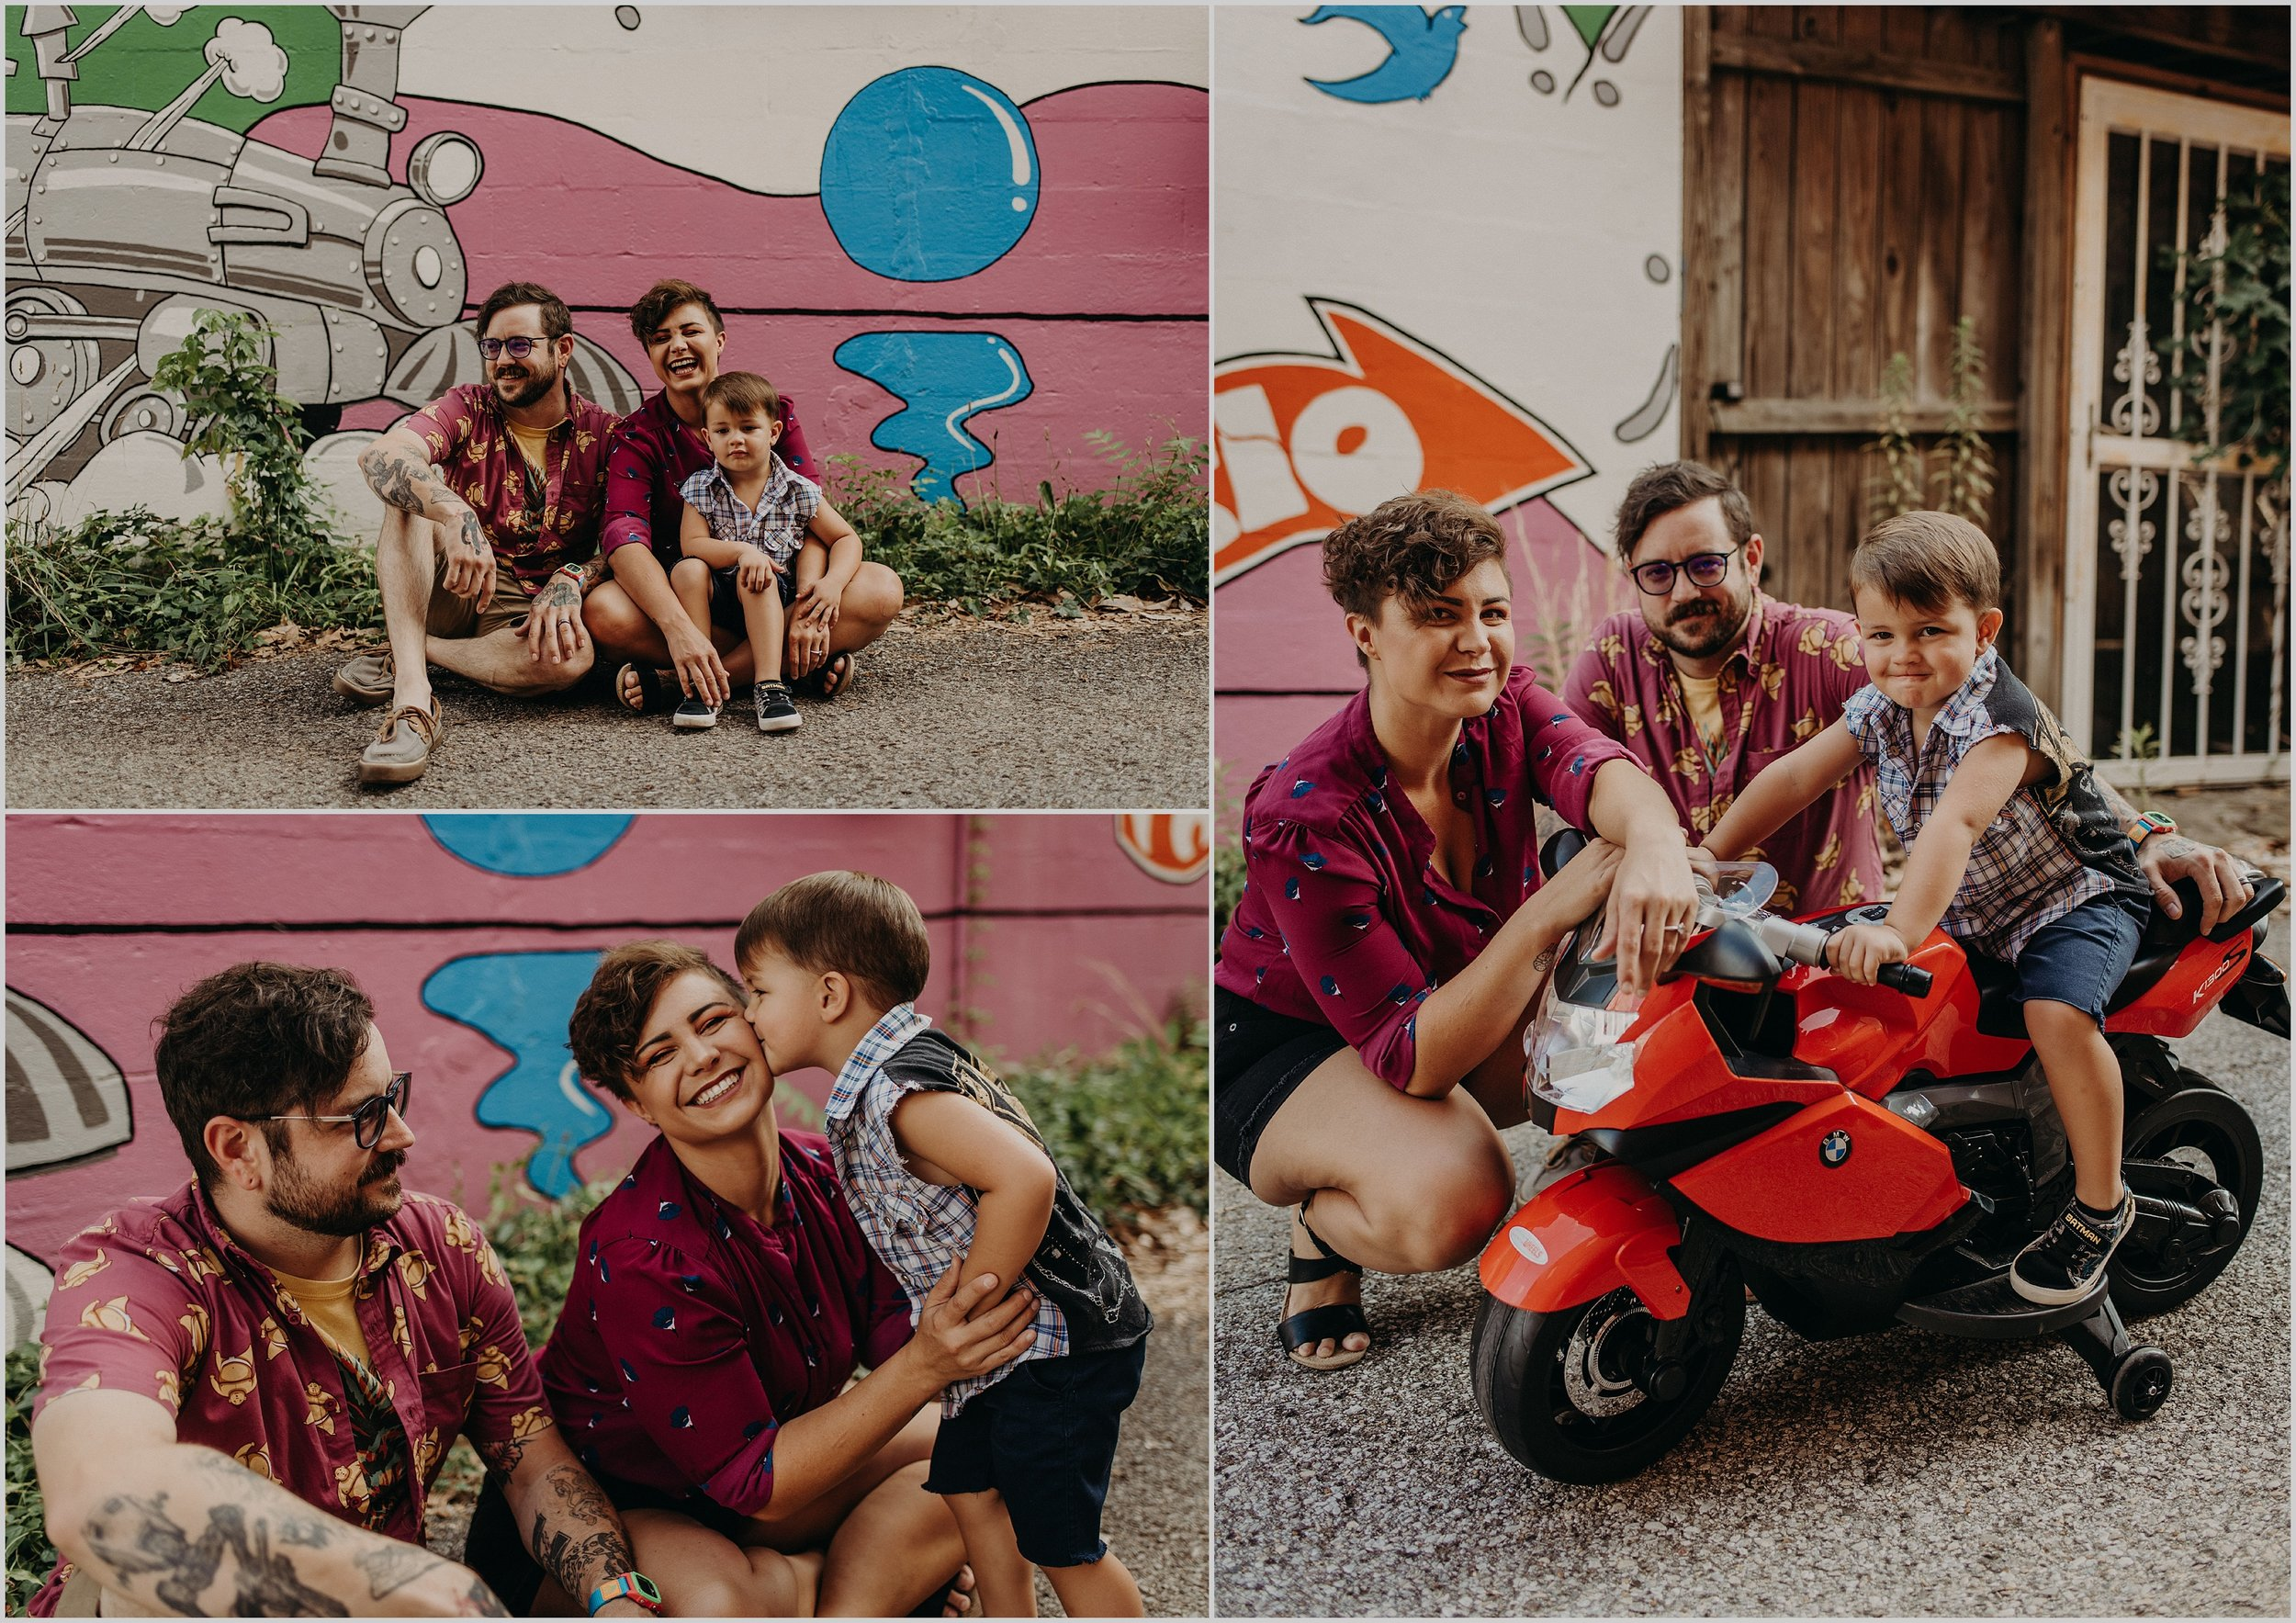 An urban family photo session in downtown St. Elmo in front of an artistic wall mural